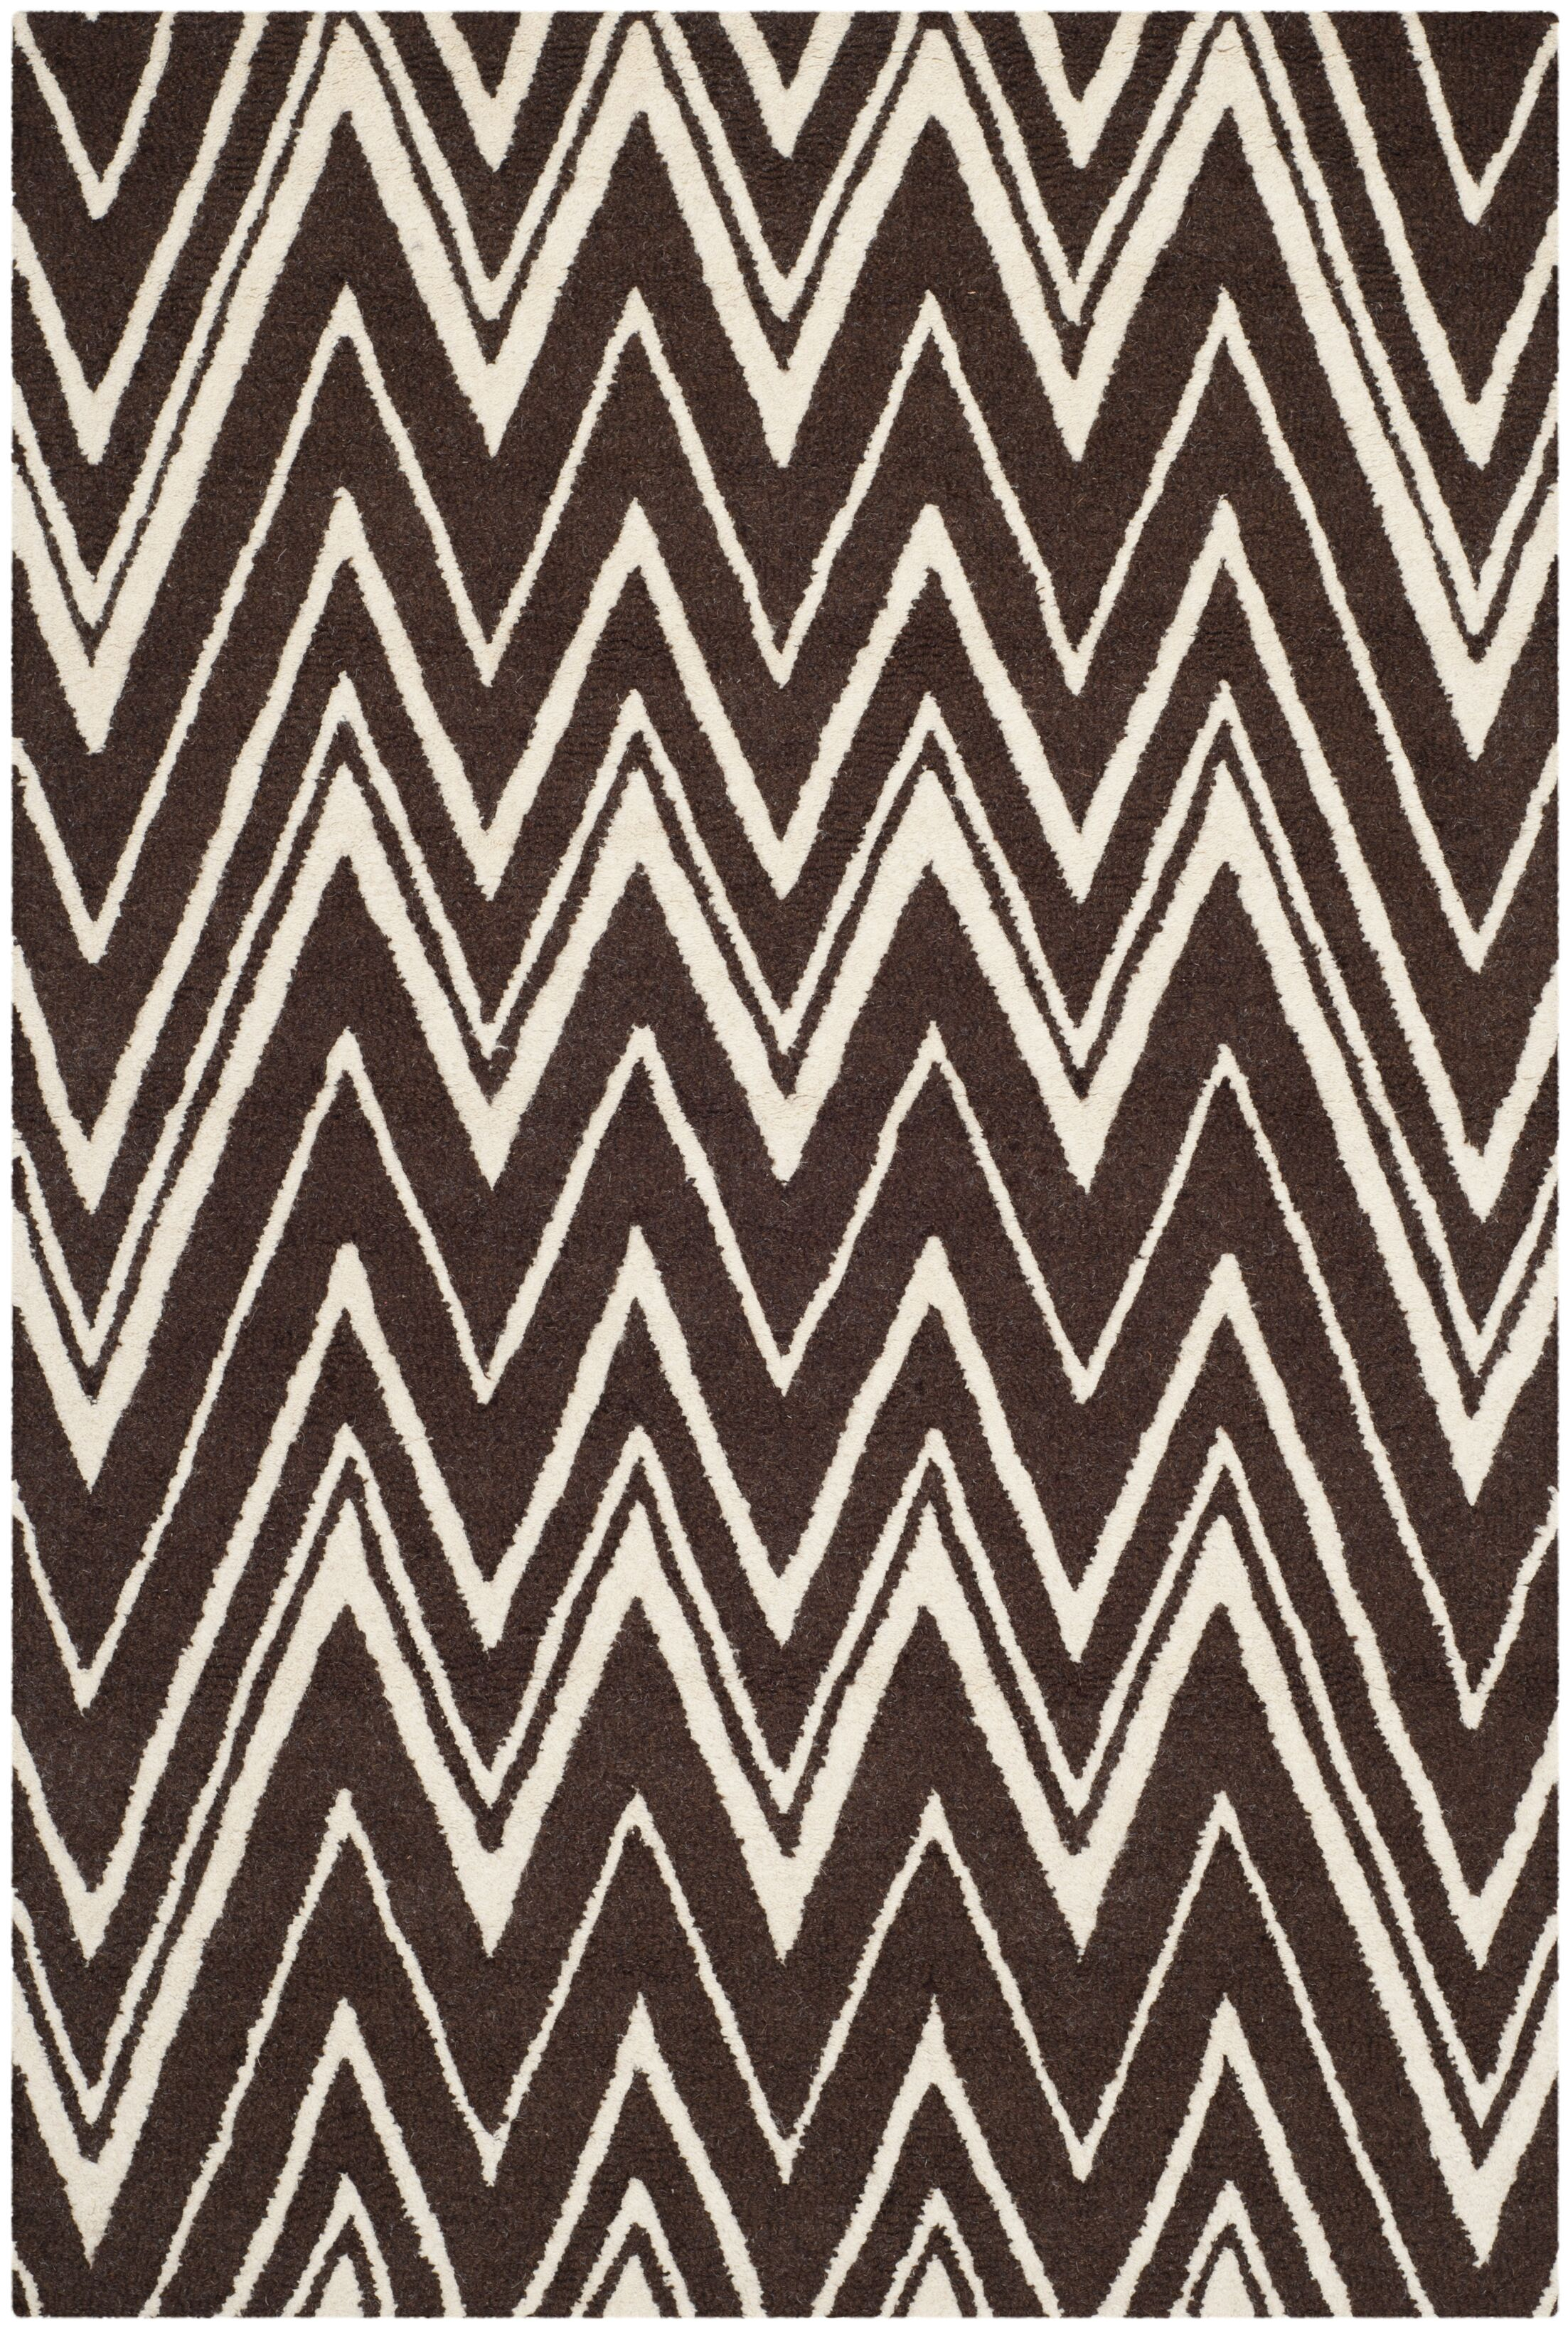 Martins Hand-Tufted Brown Area Rug Rug Size: Rectangle 4' x 6'